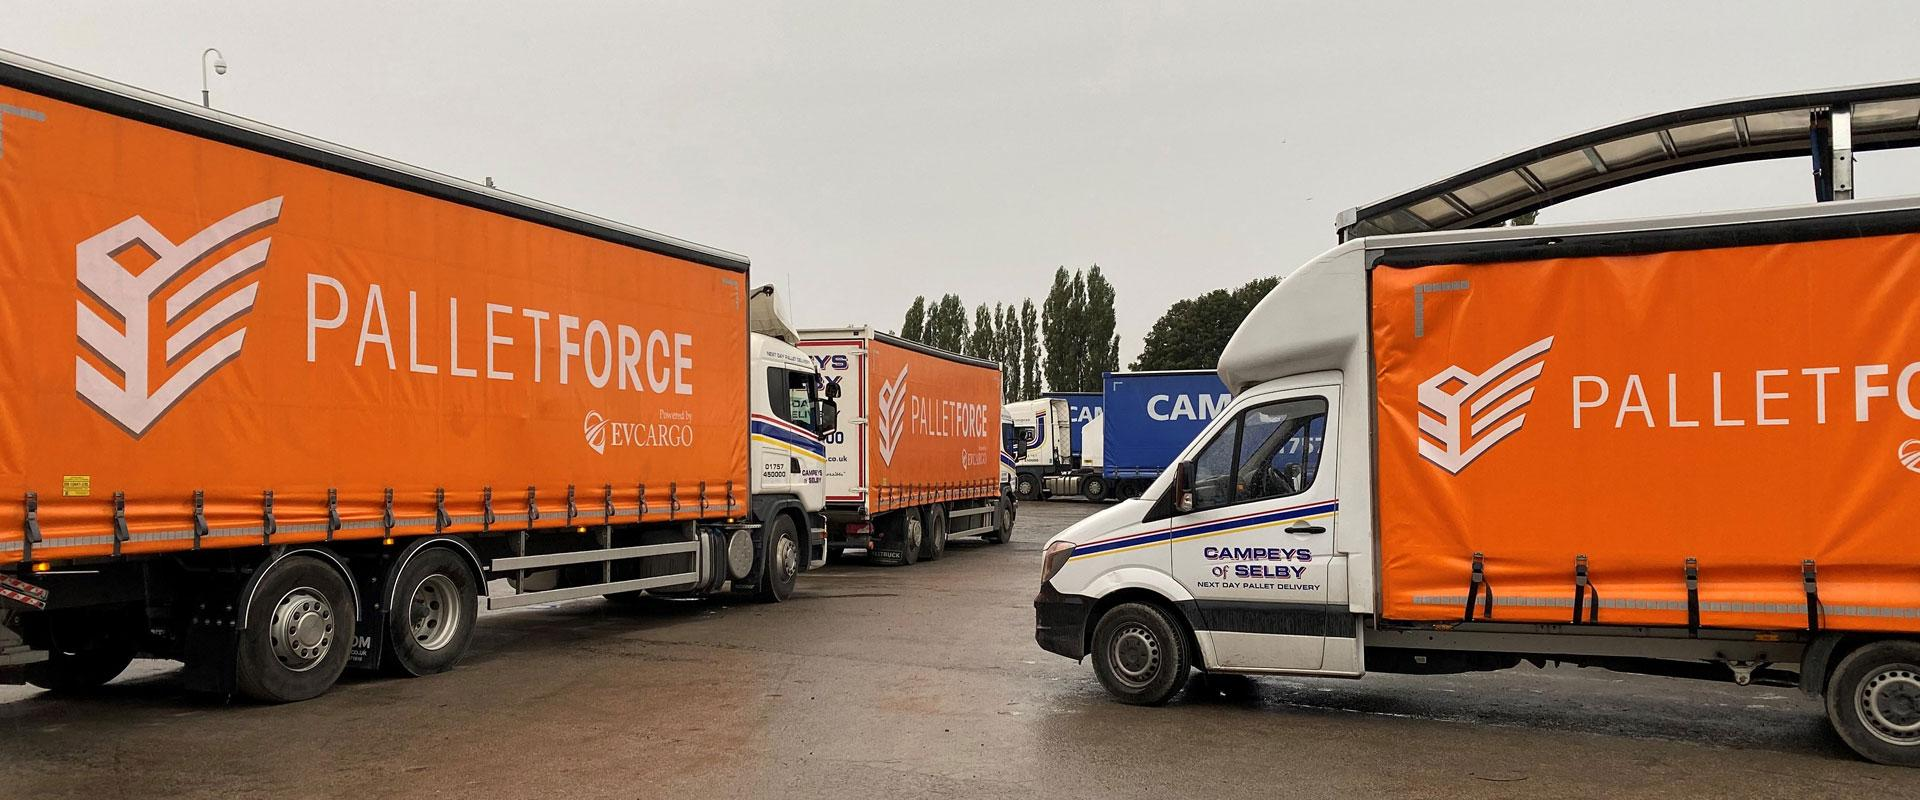 Palletforce at Campeys of Selby